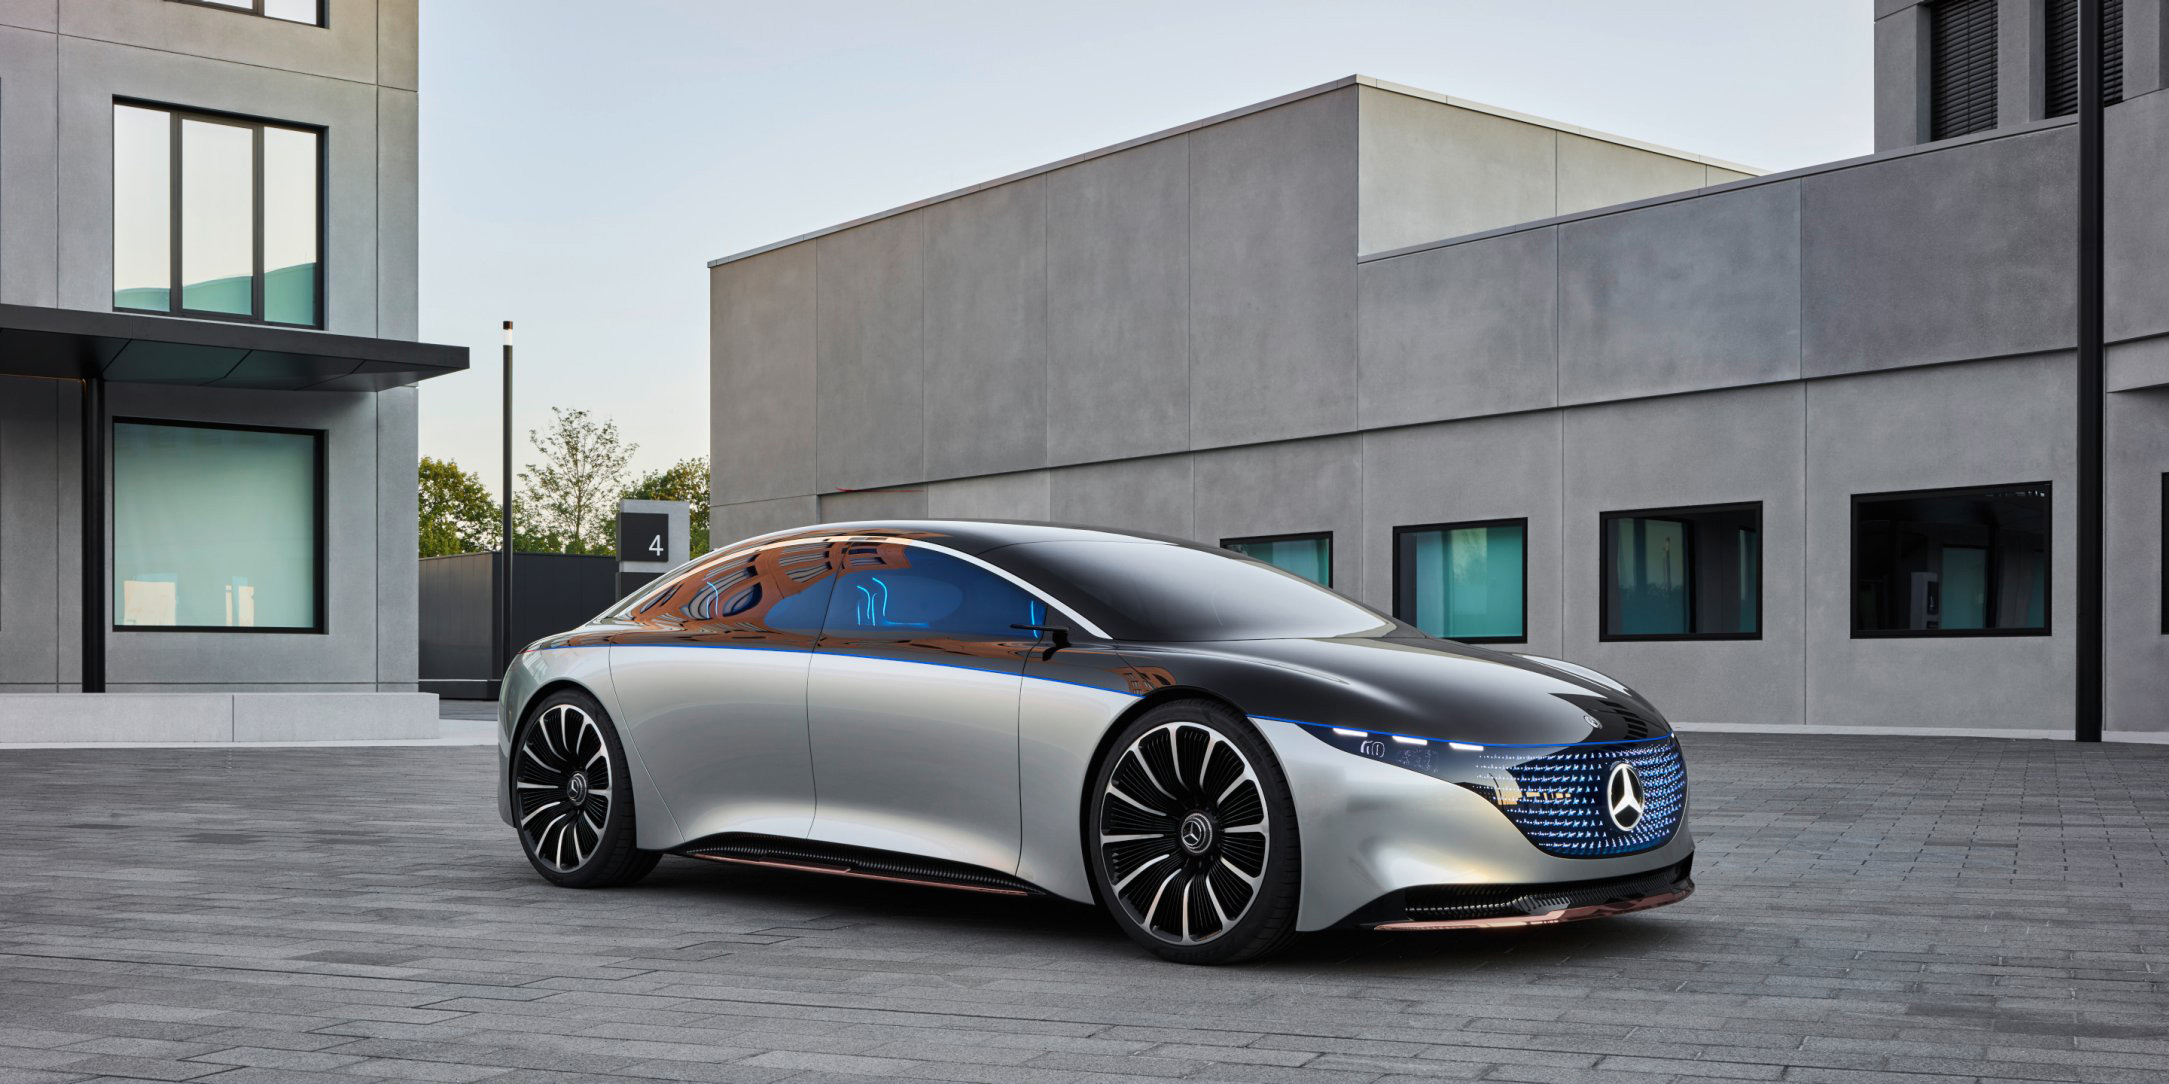 Here comes Mercedes EQS electric sedan, as company makes a run at Tesla - Electrek